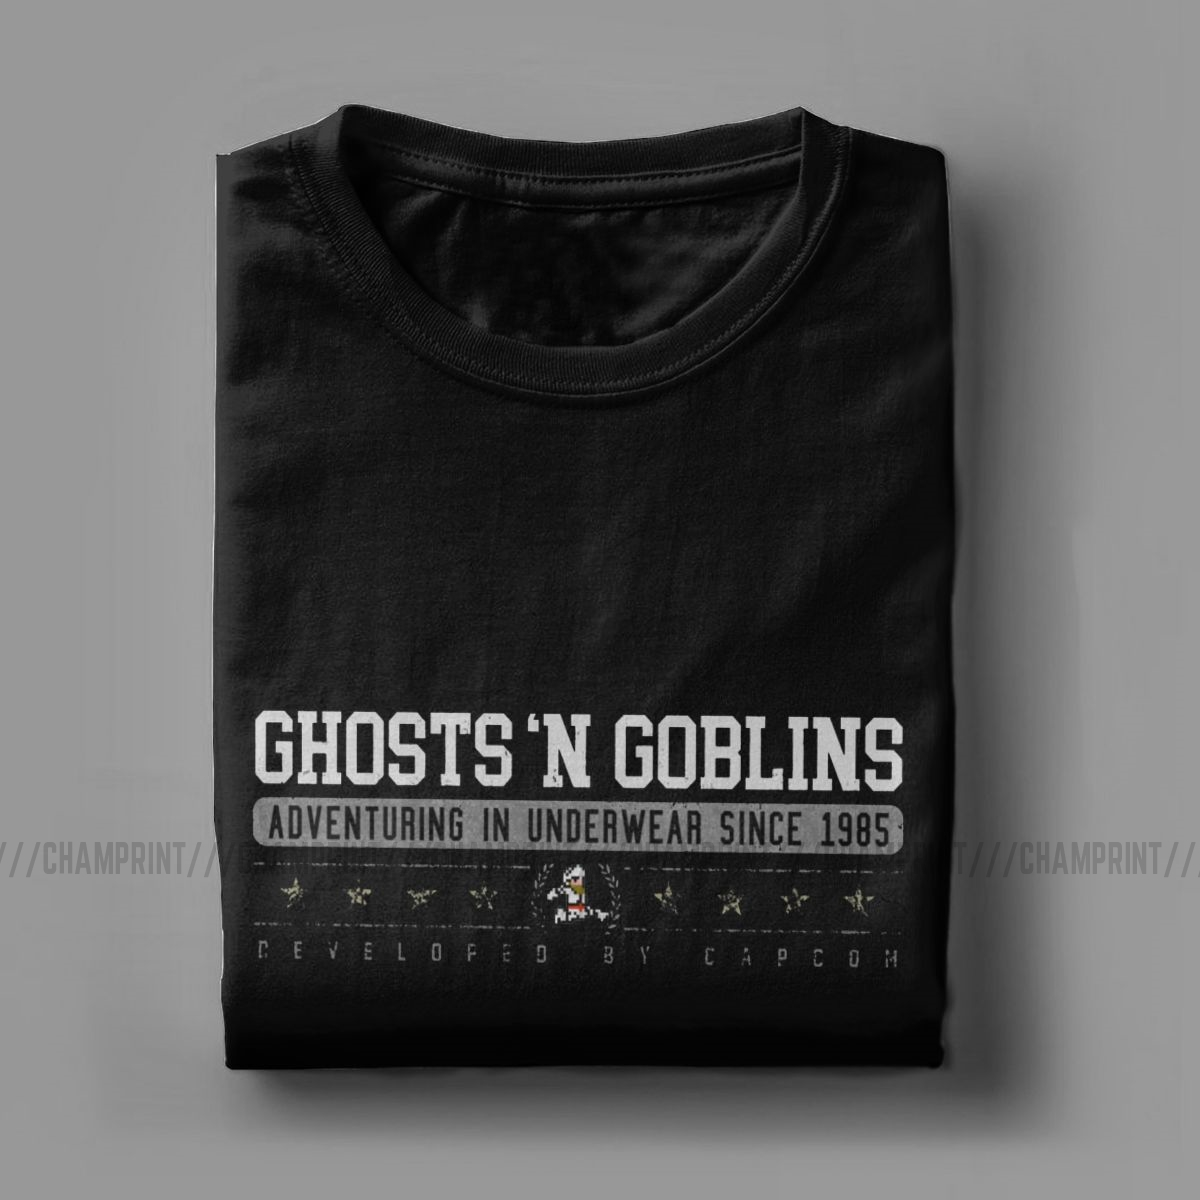 Novelty Ghosts 'N Goblins T-Shirts Men Round Neck Cotton T Shirts Ghouls 'n Ghosts Daimakaimura Arcade Games Tees Graphic Tops